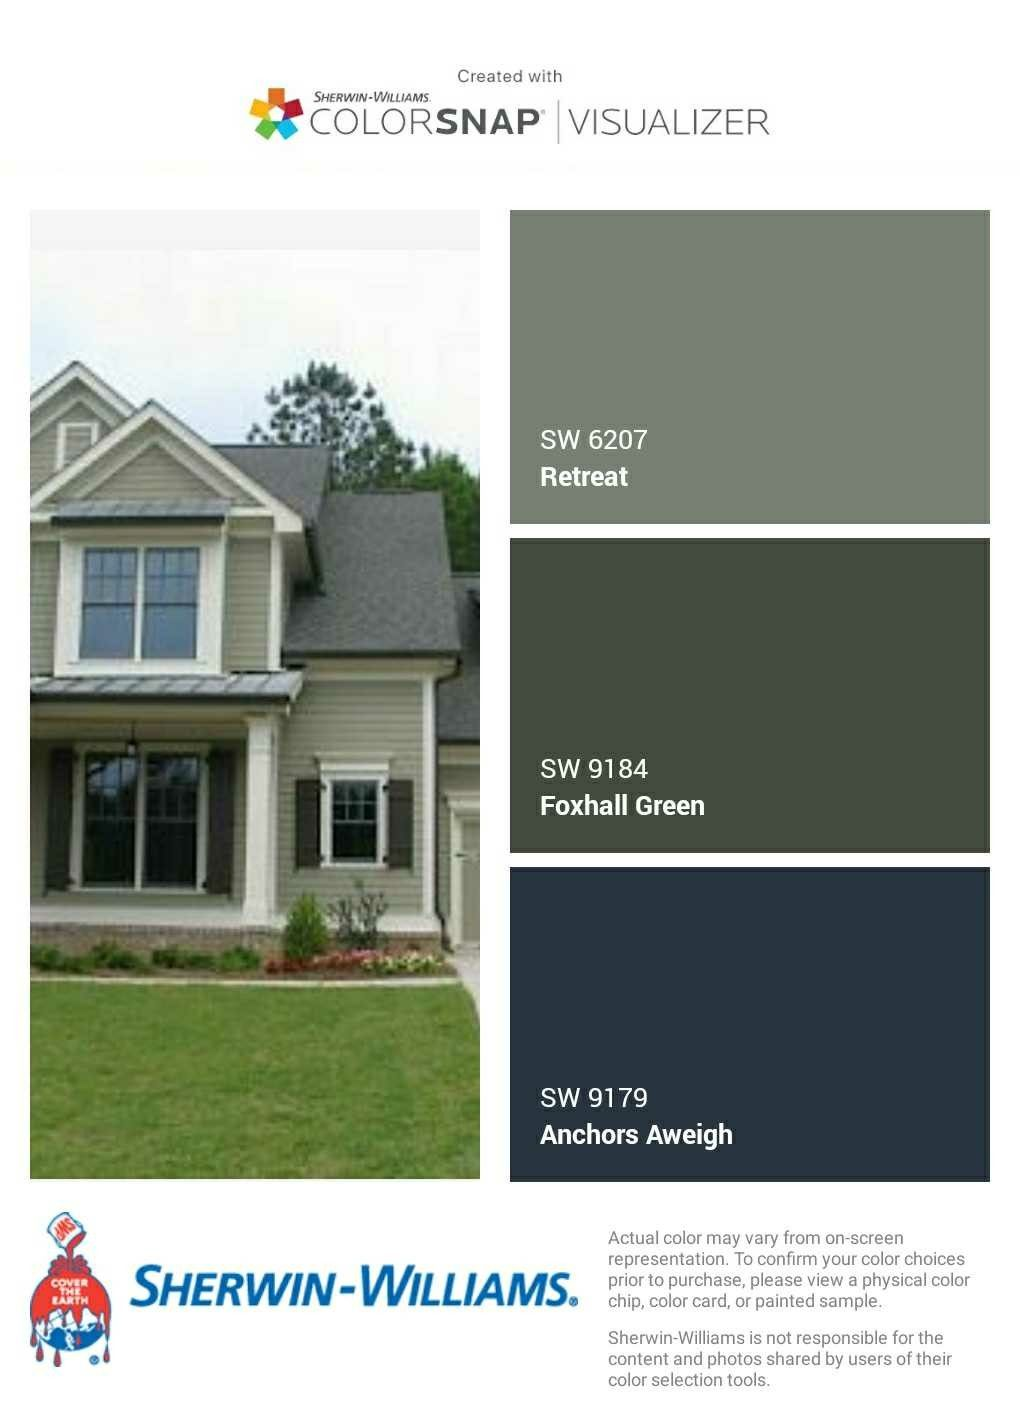 Pin by Ryan on Paint in 2019 | House paint exterior